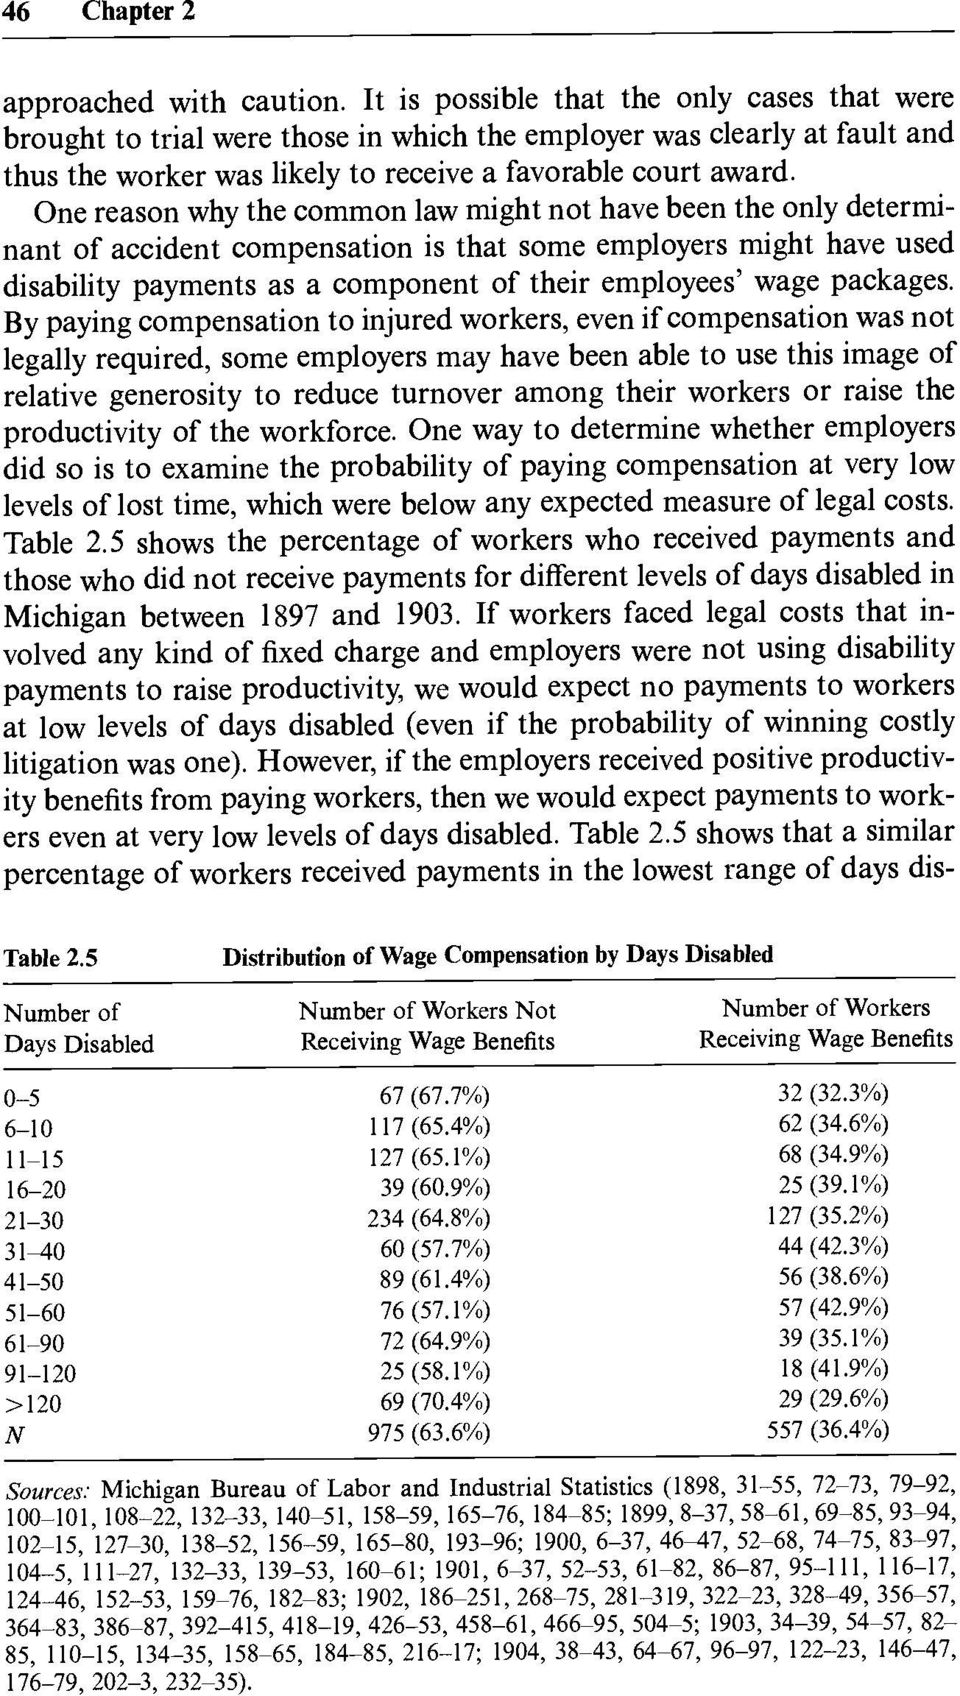 One reason why the common law might not have been the only determinant of accident compensation is that some employers might have used disability payments as a component of their employees' wage